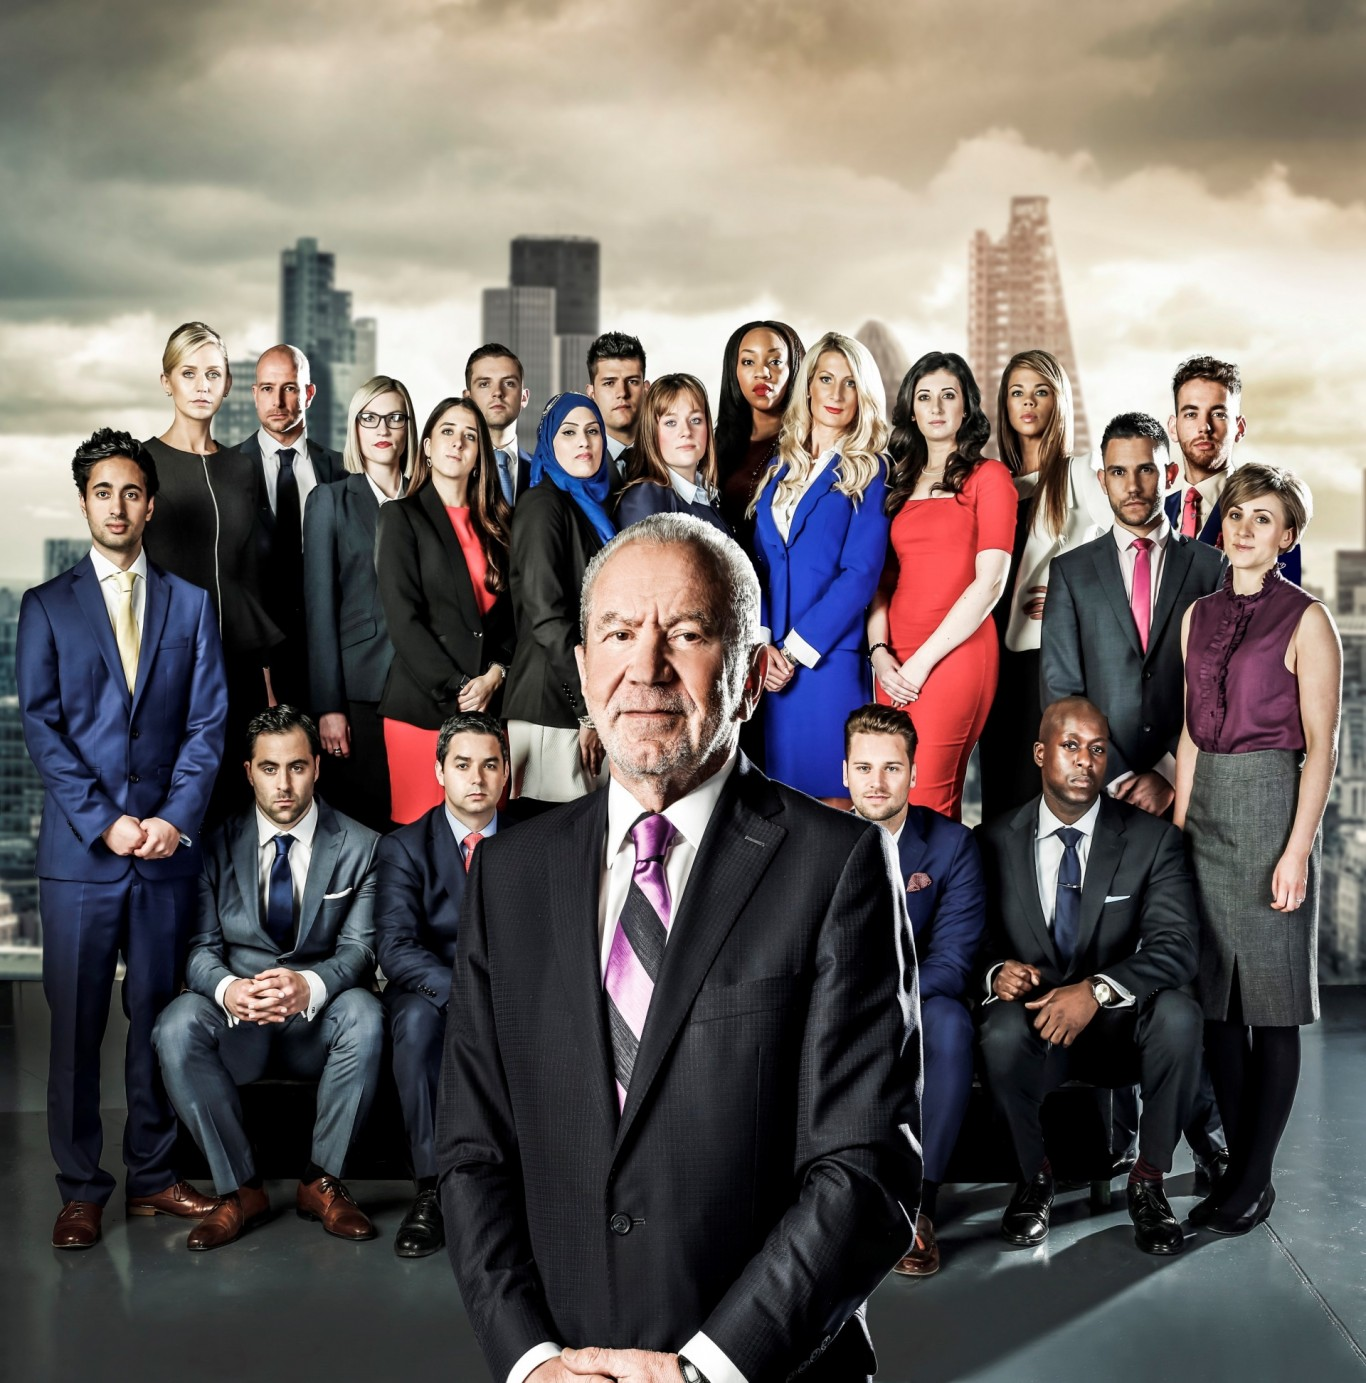 The Apprentice contestants and Lord Sugar